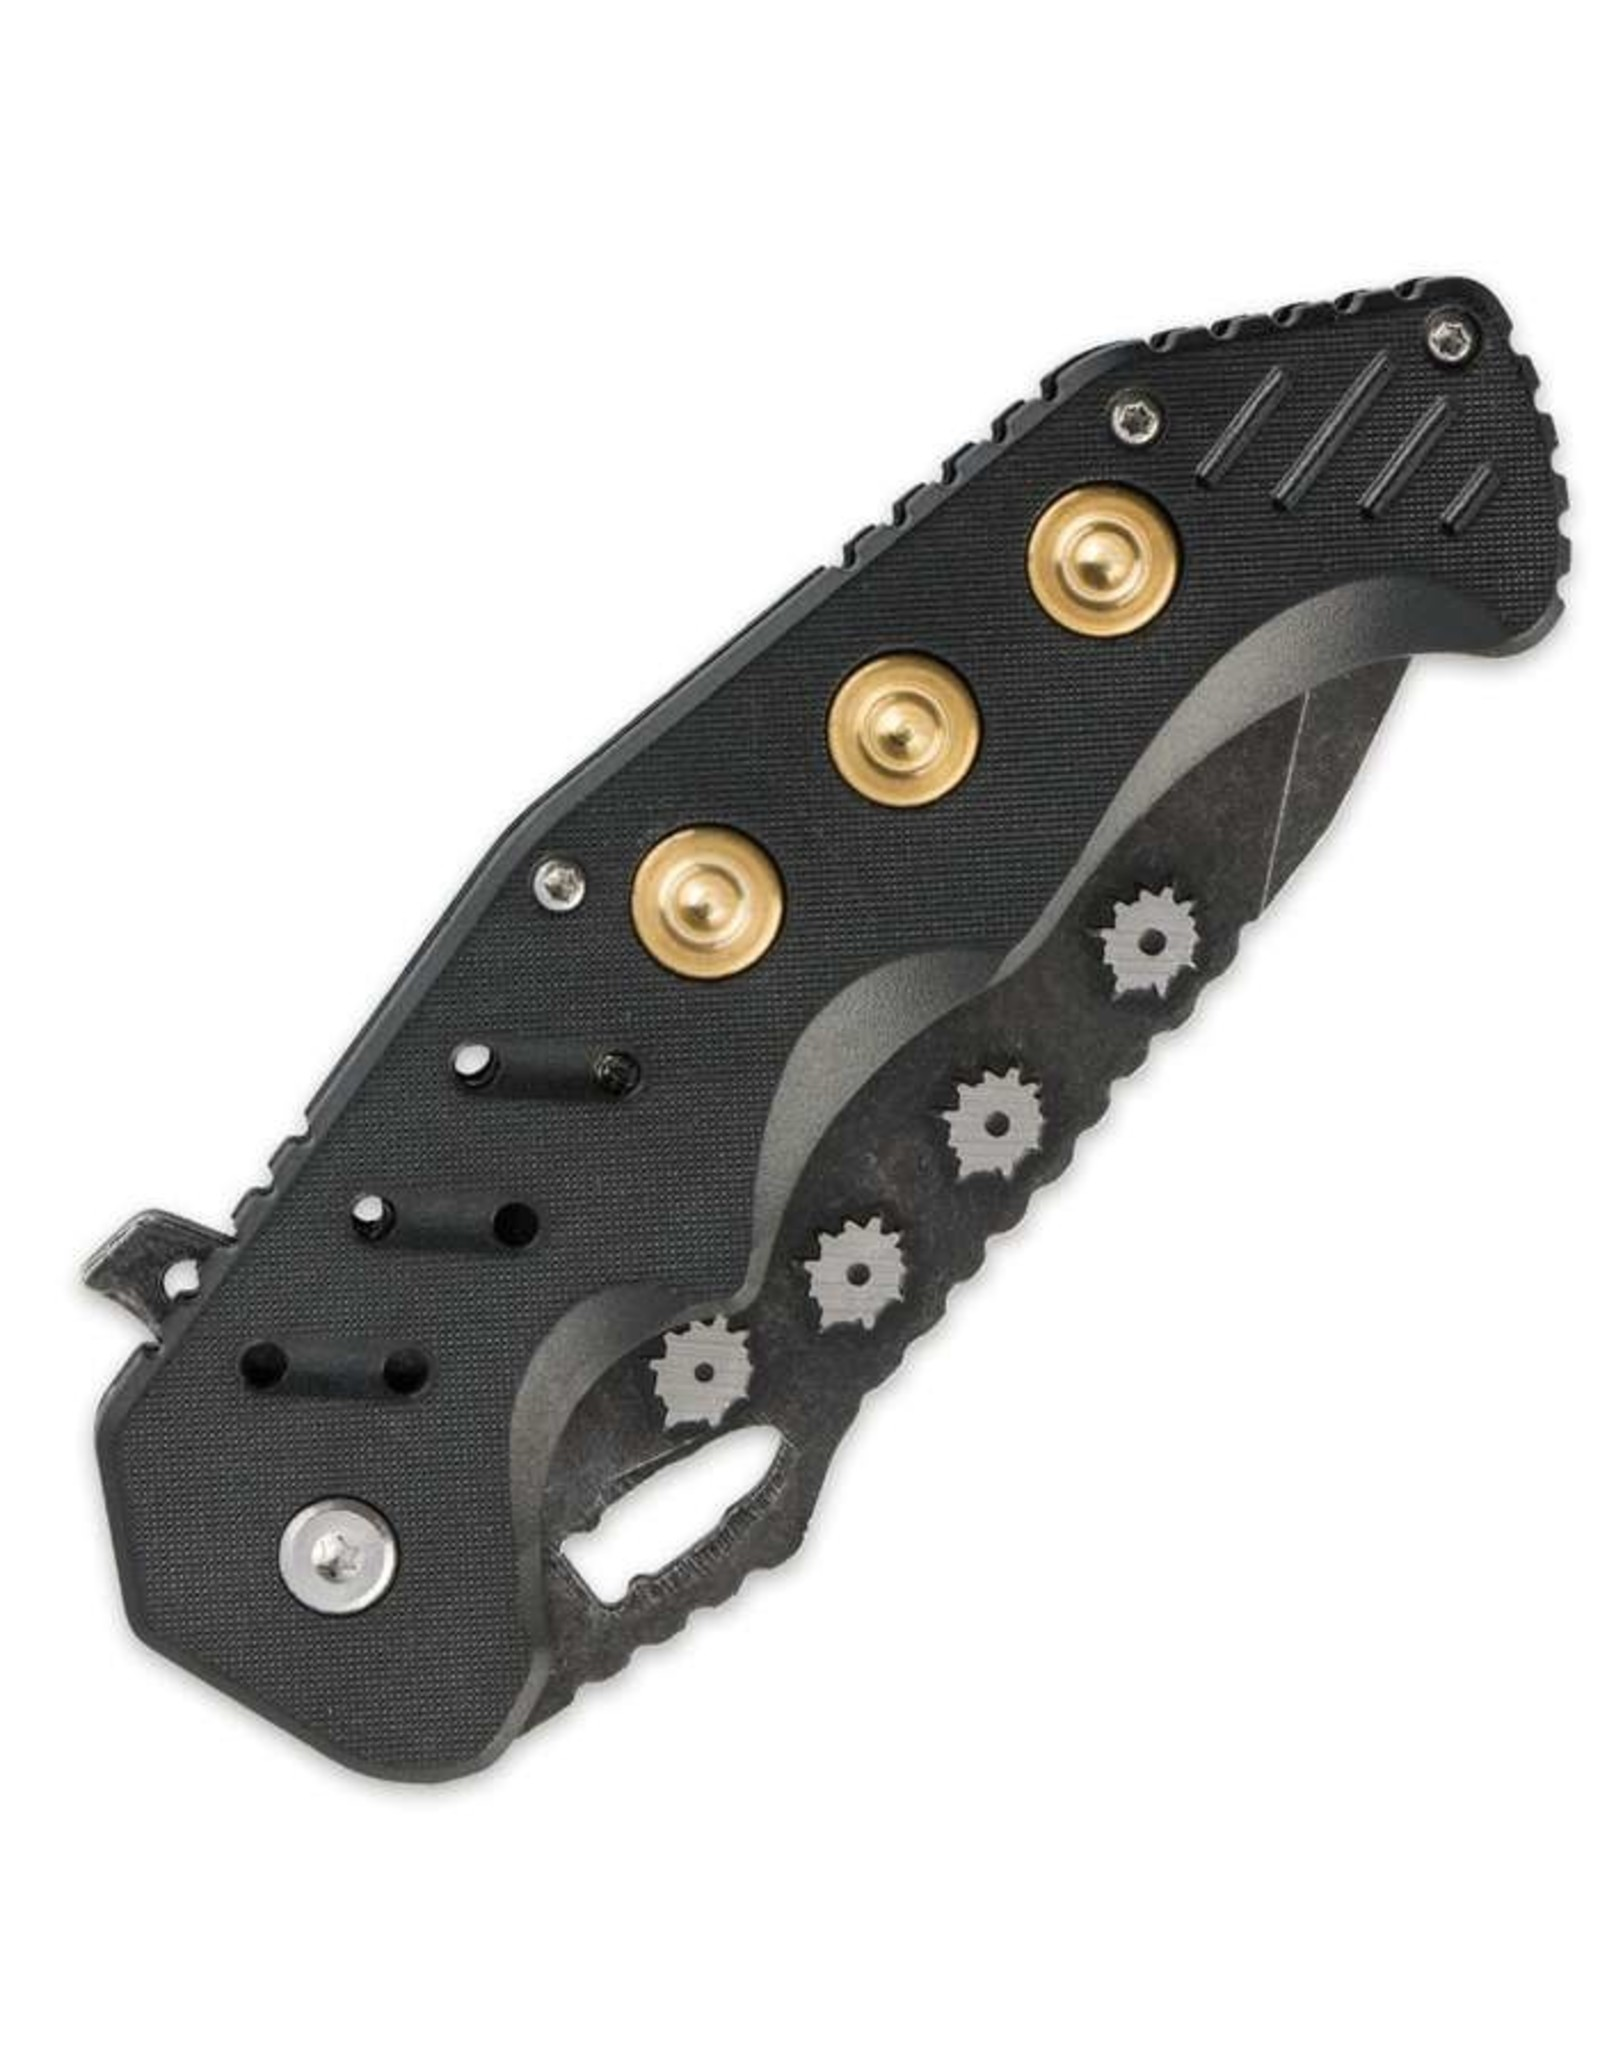 The Punisher Assisted Opening Pocket Knife